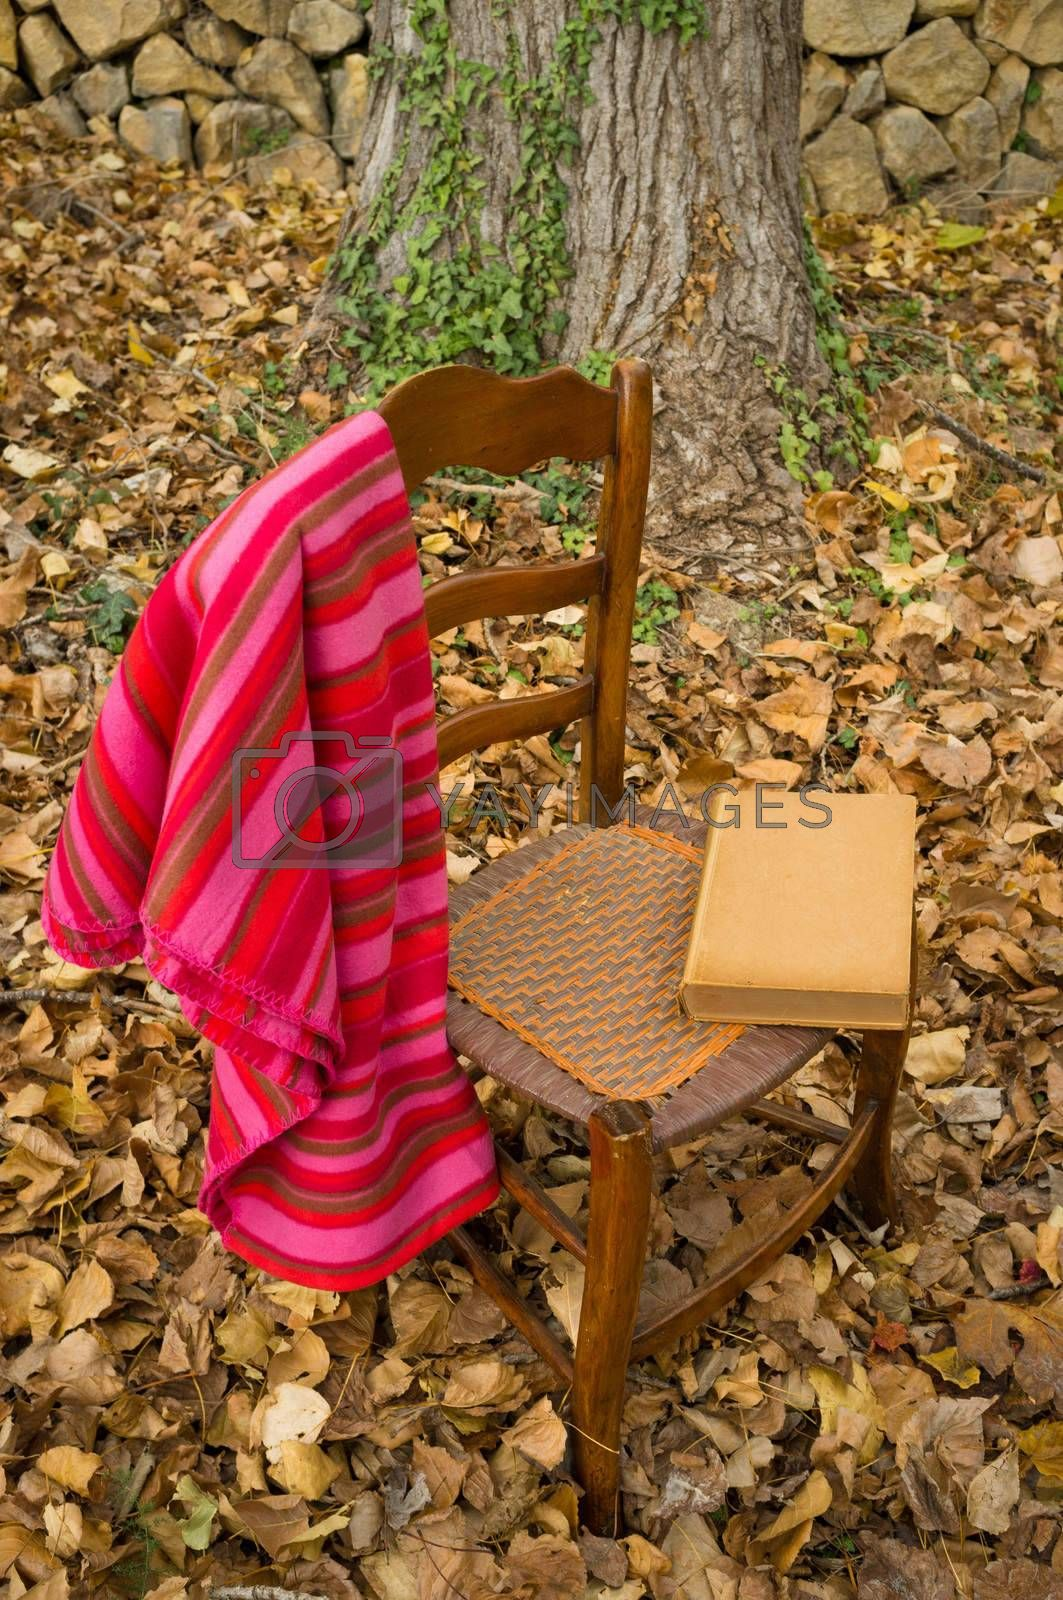 Cozy chair with blanket against an autumn background